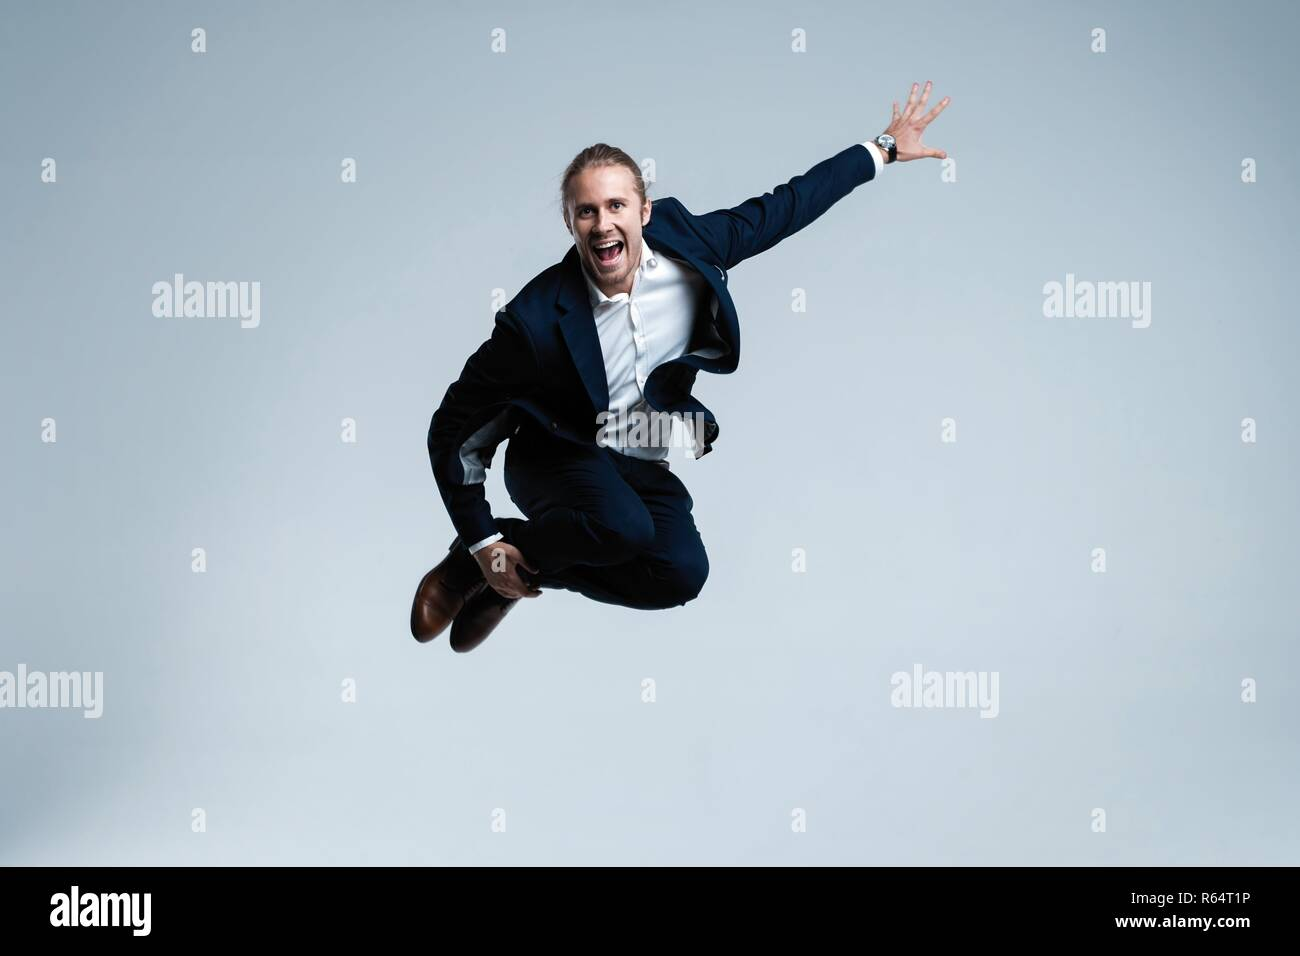 Young successful businessman in suit rejoicing, jumping over white background. Stock Photo